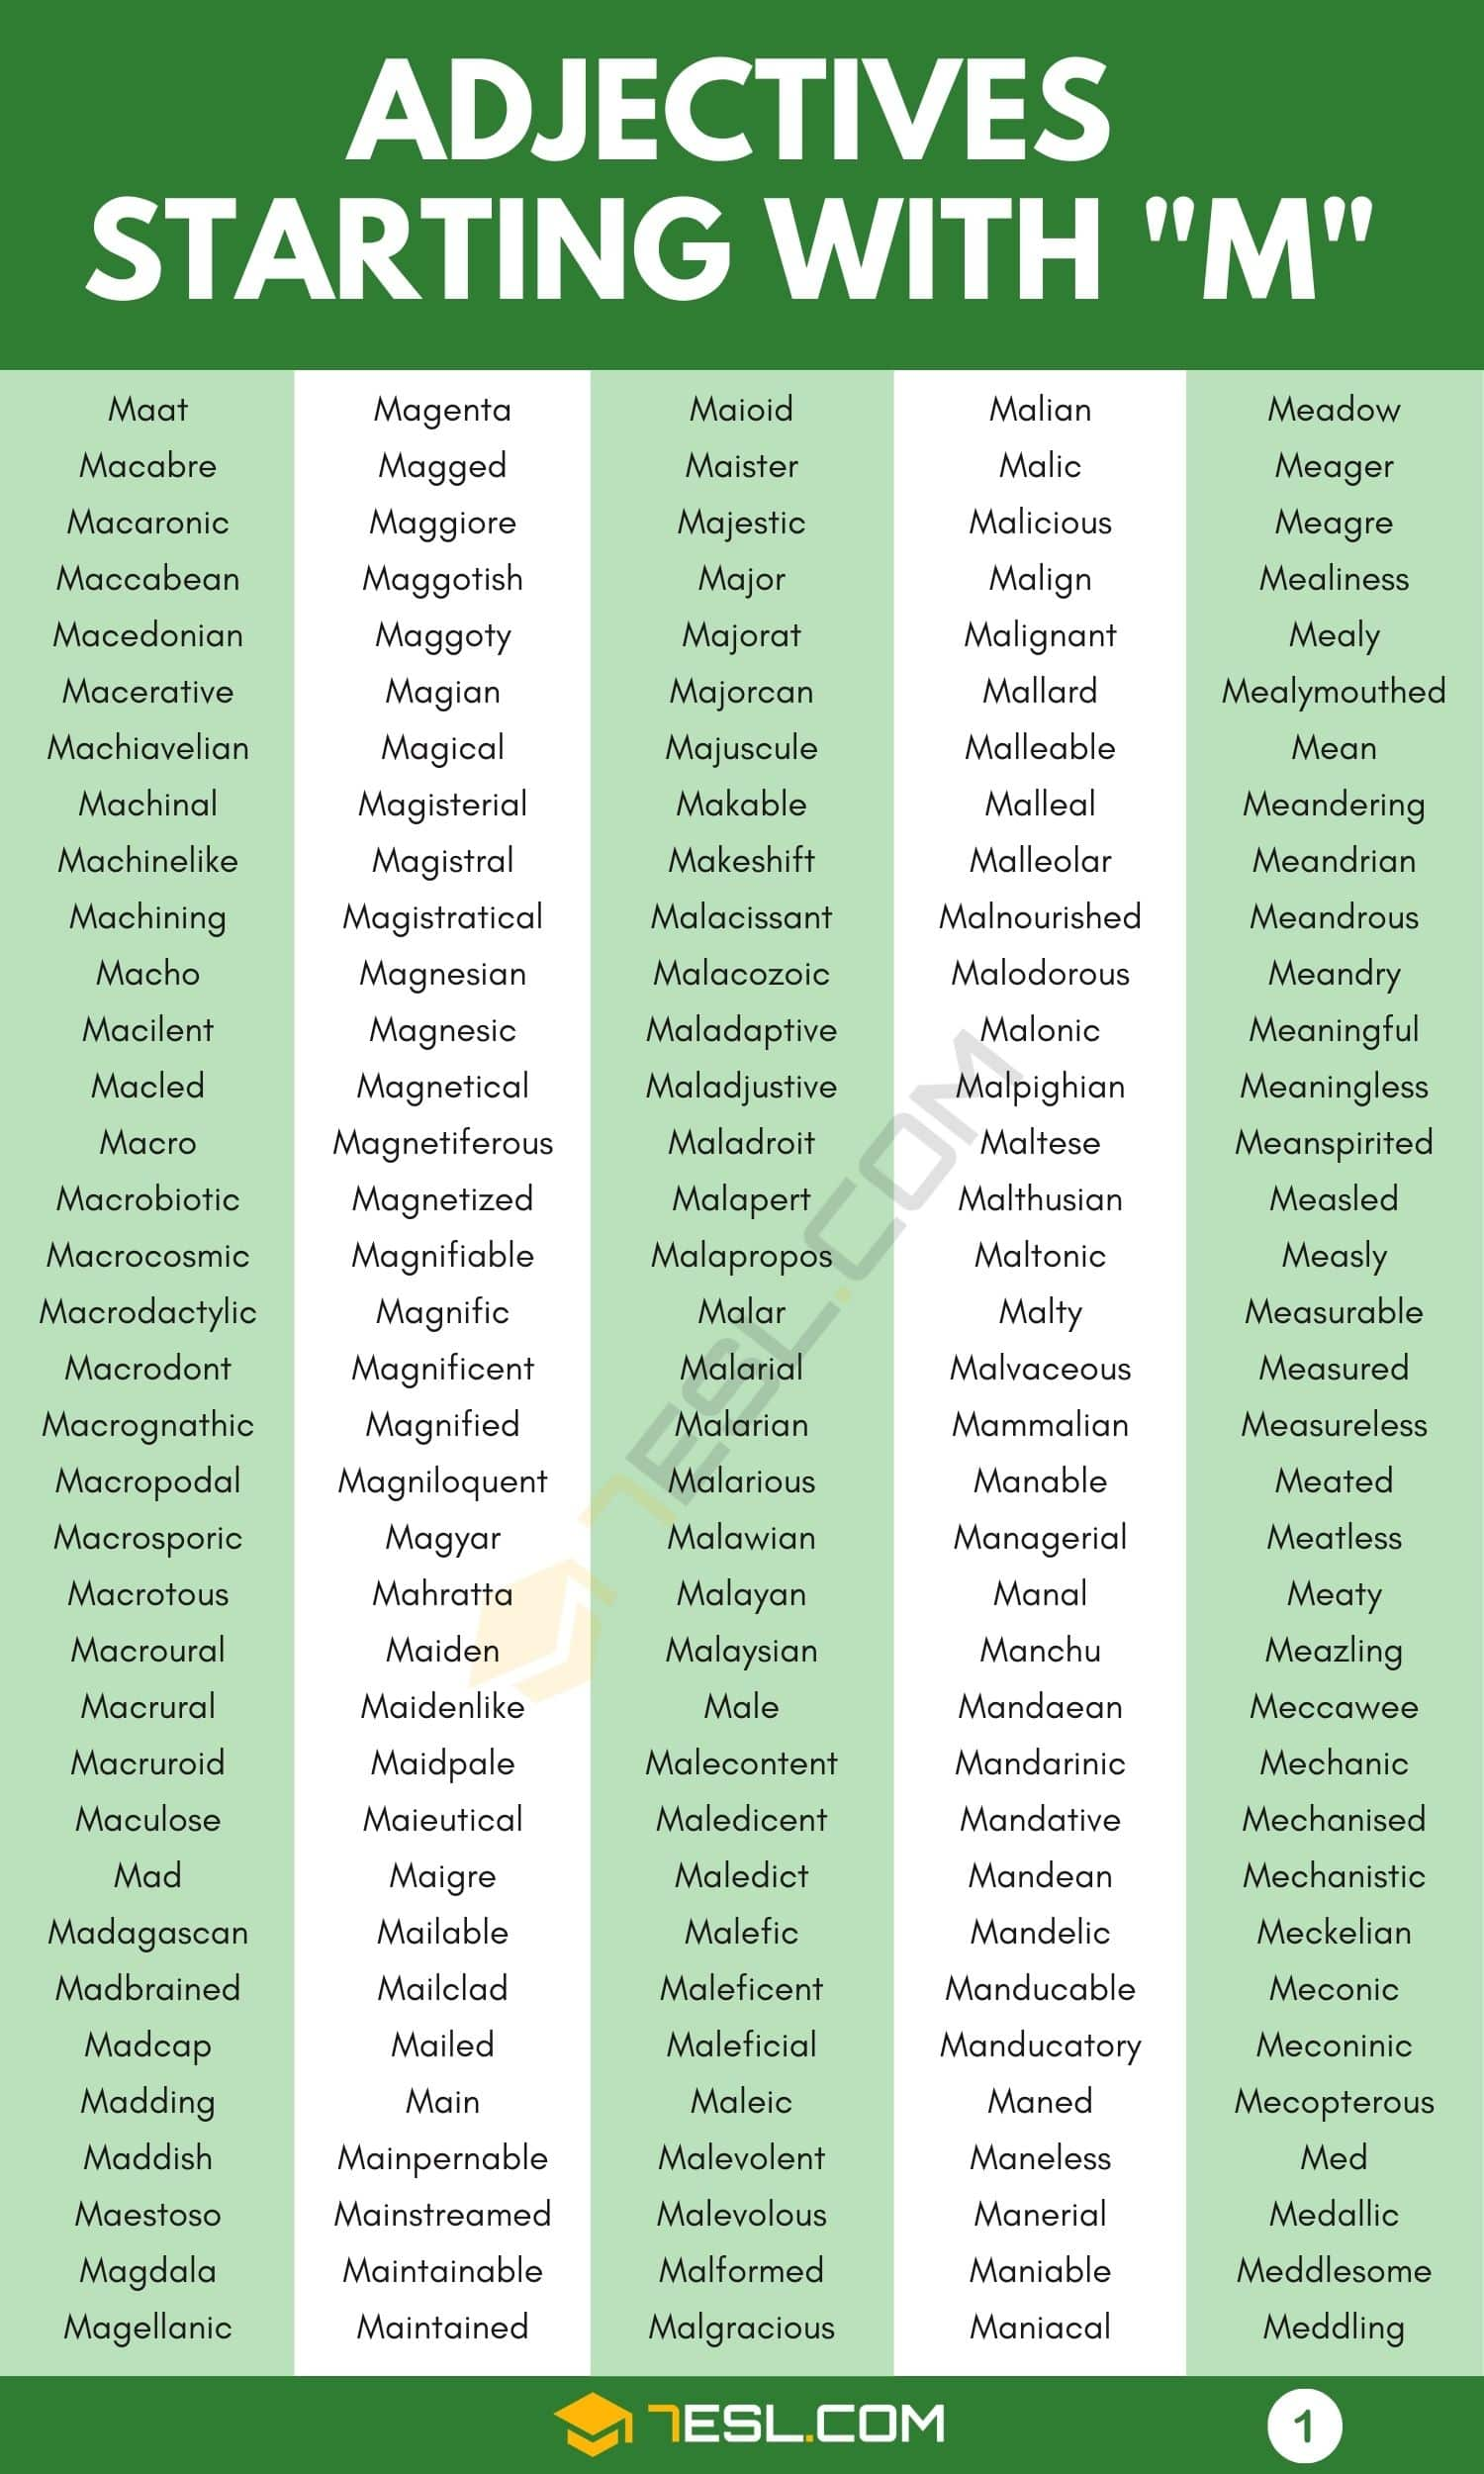 Adjectives that Start with M